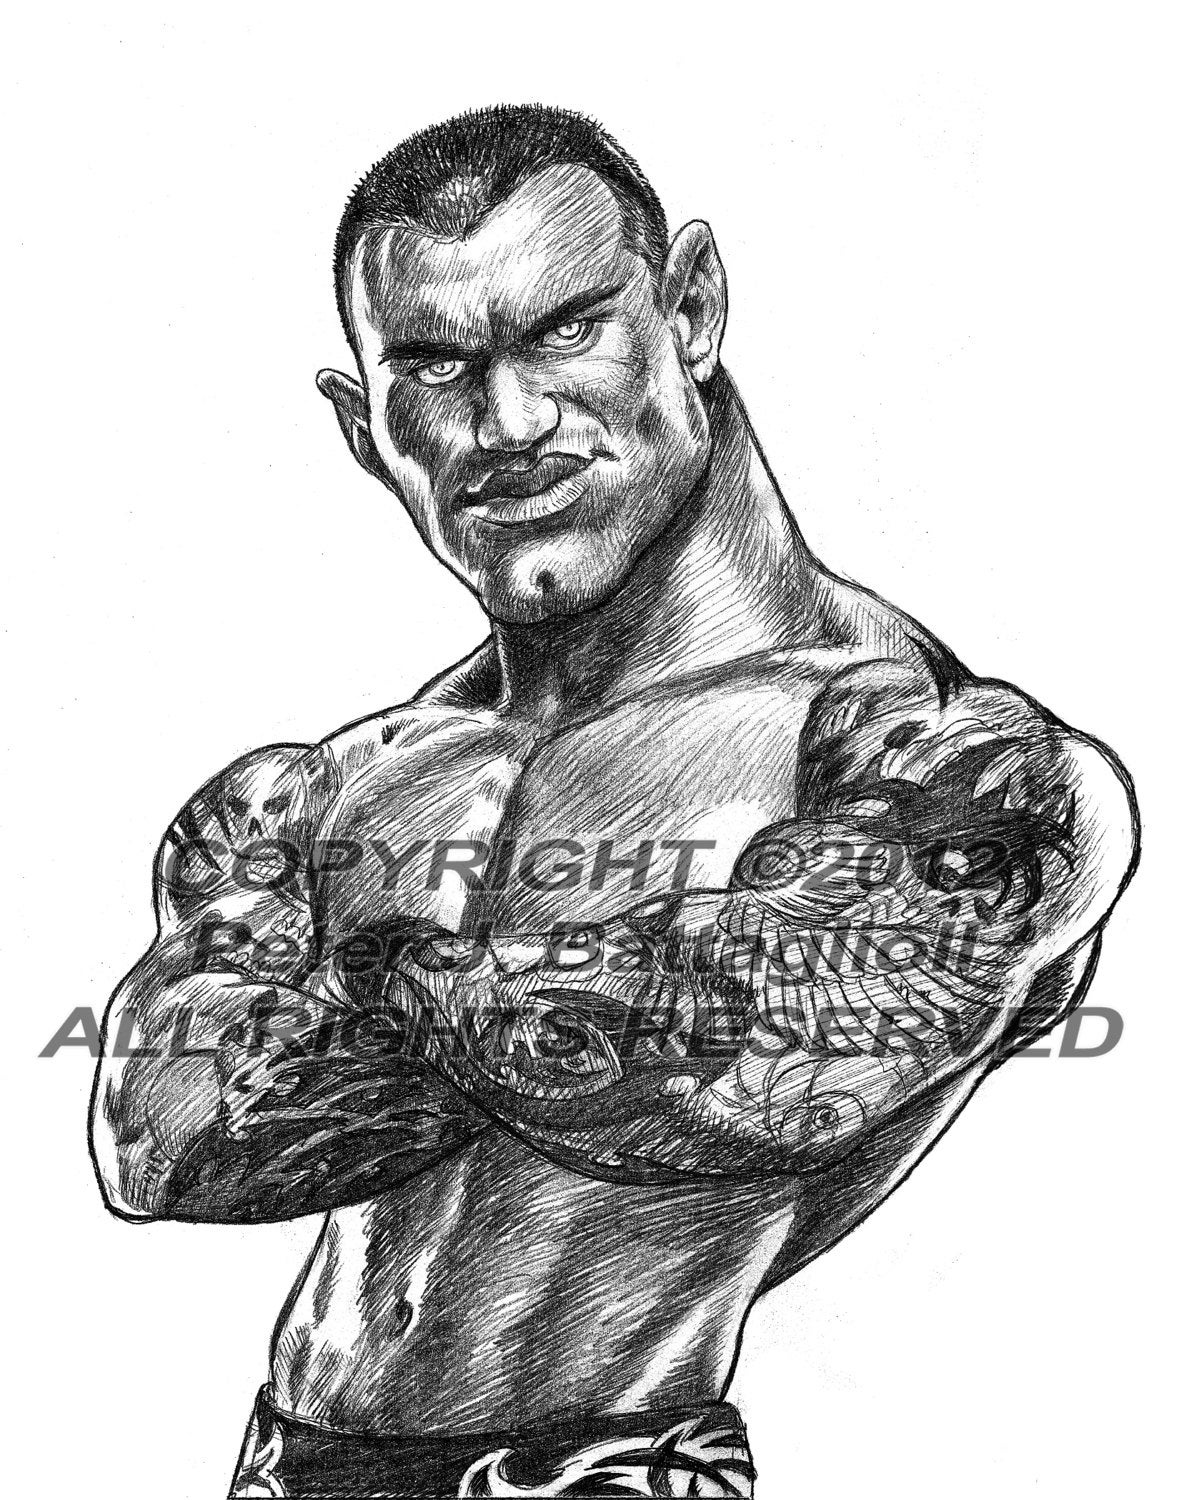 randy orton caricature poster art sketch print limited